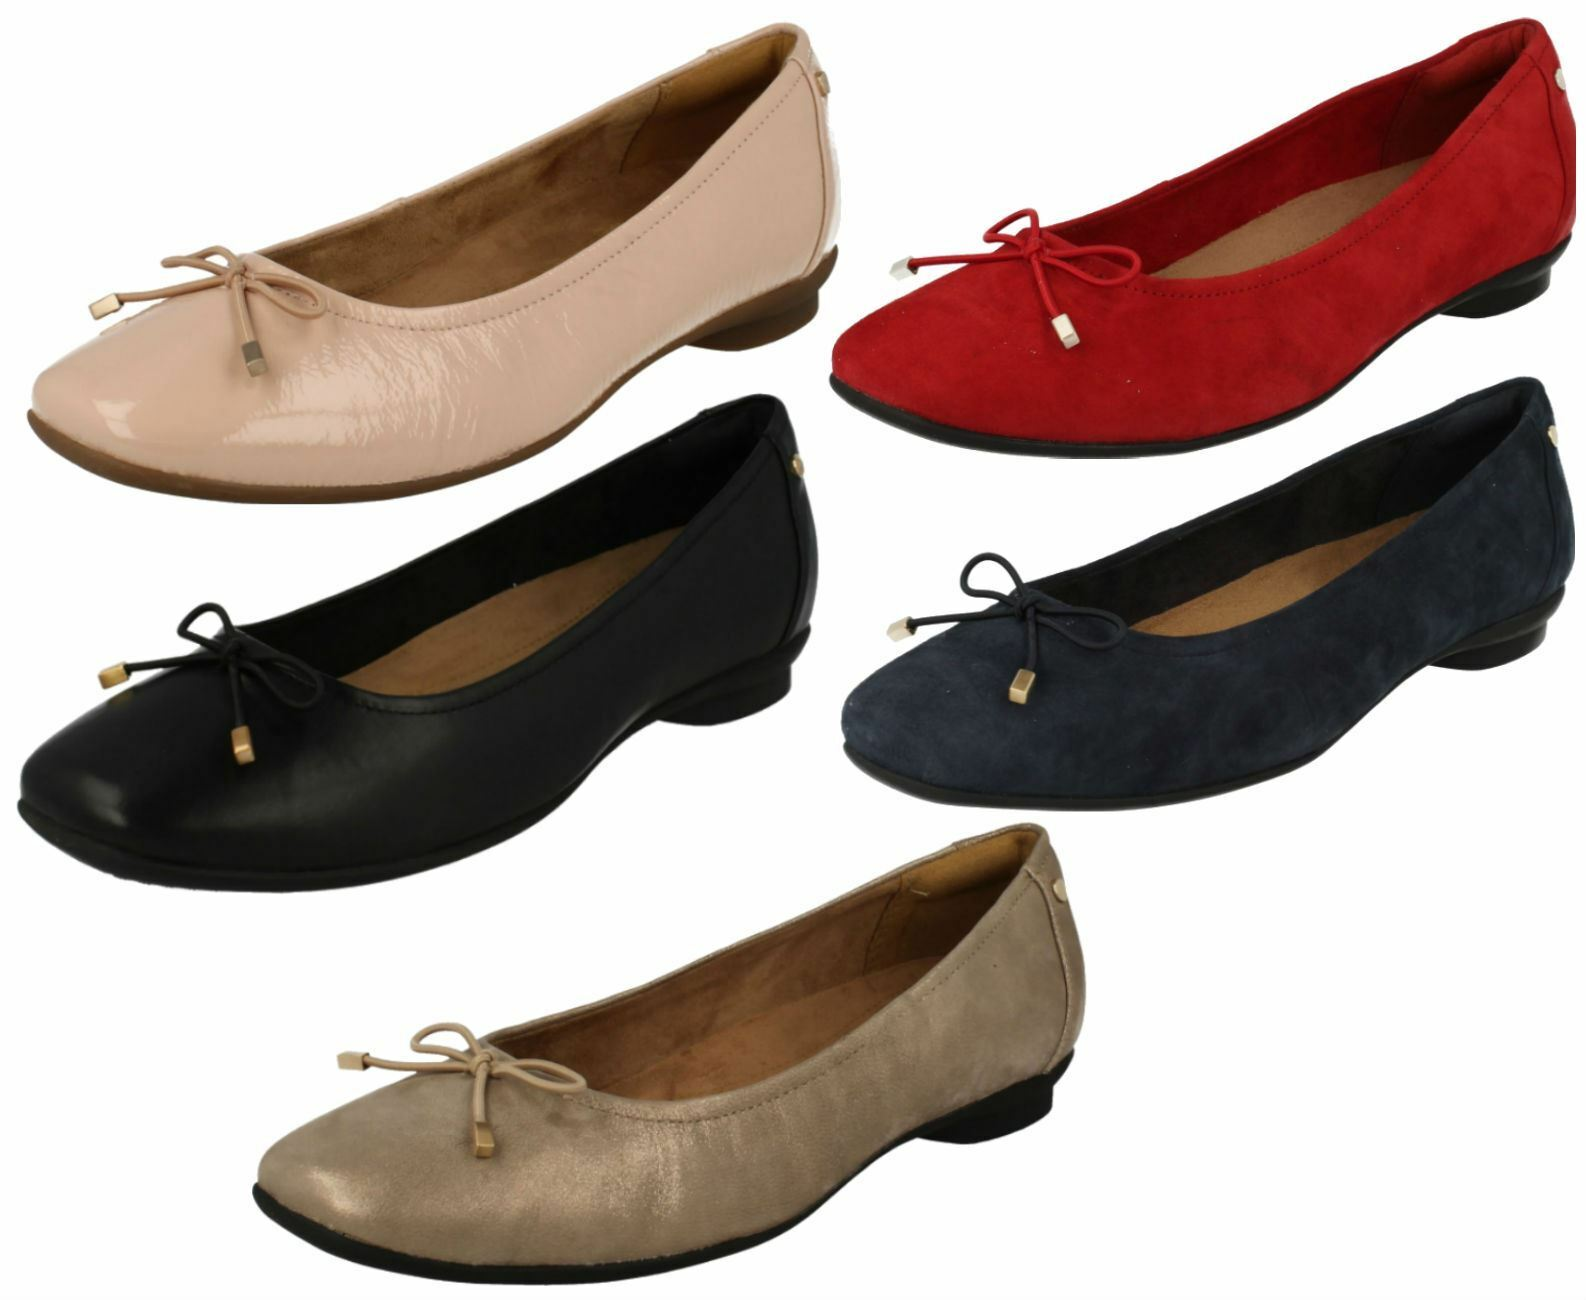 Ladies Clarks Casual Ballerina Style Pumps Candra Light